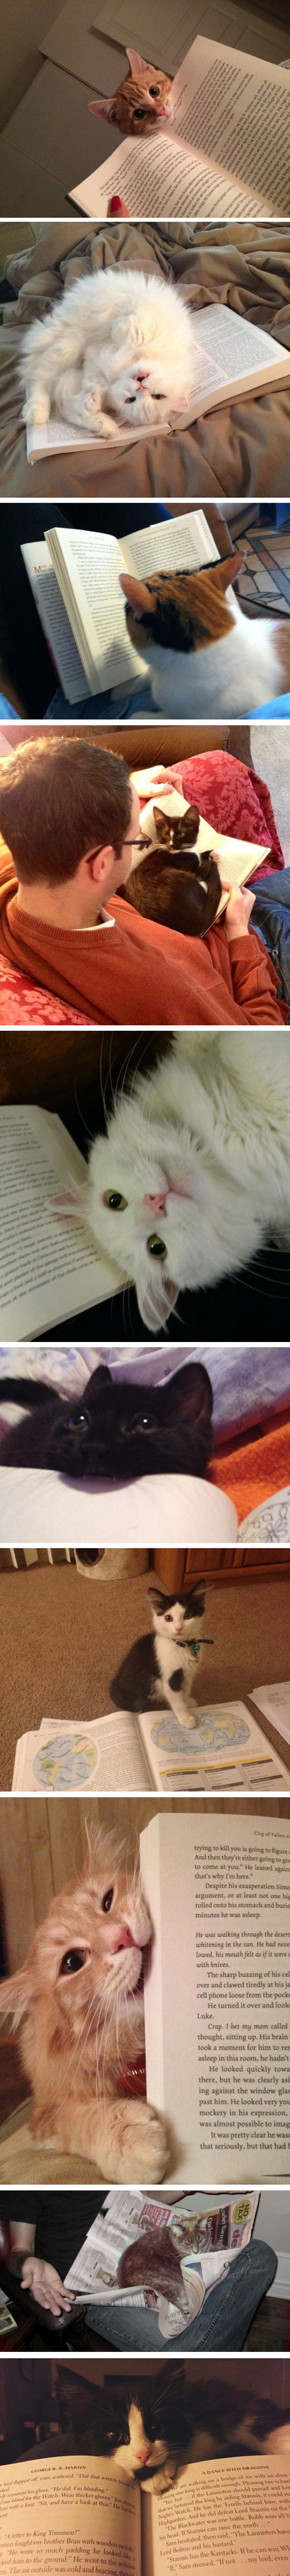 cool-cat-reading-book-annoying